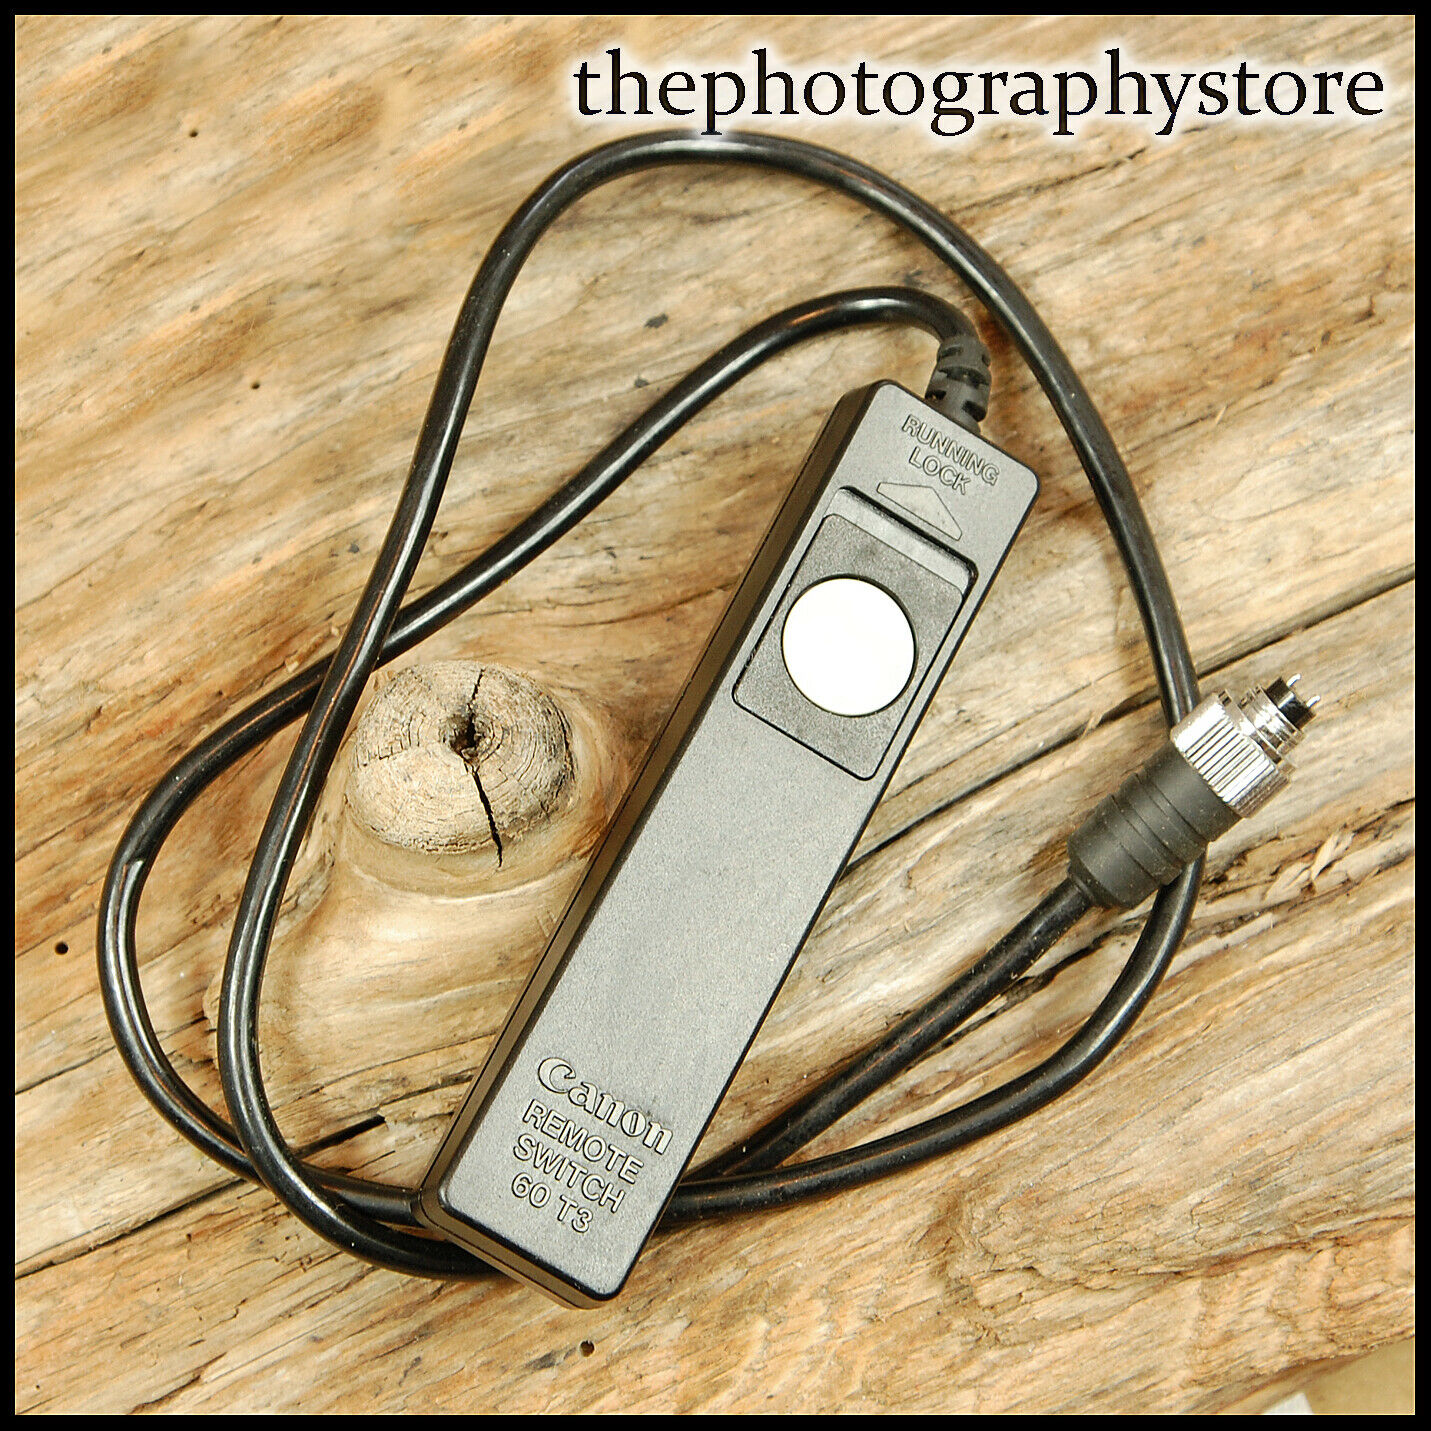 Genuine Canon 60 T3 Wired Remote Release for EOS 620 650 Film SLRs FREE UK POST